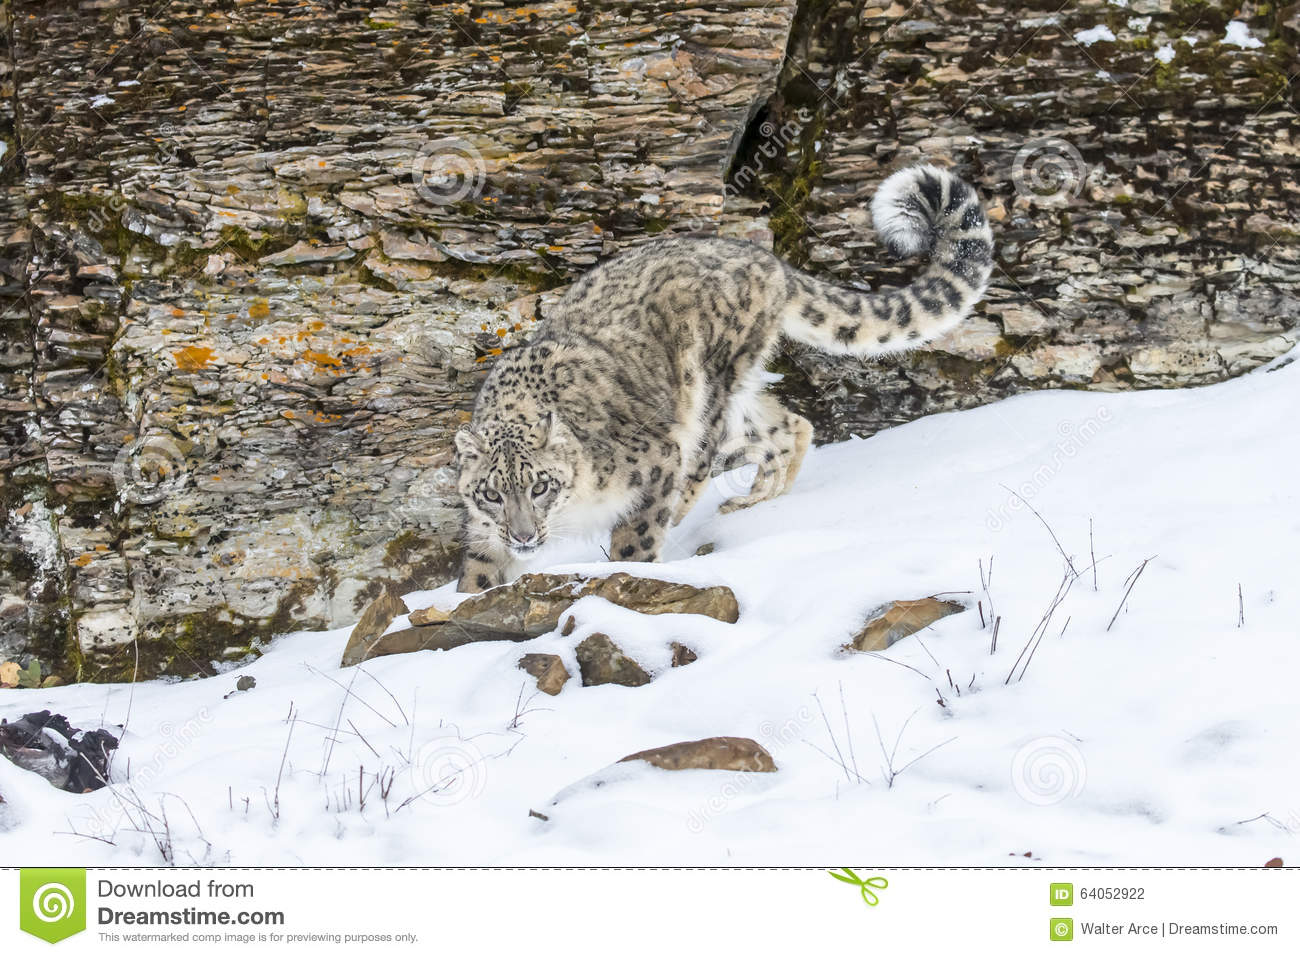 Snow leopard hunting prey - photo#28